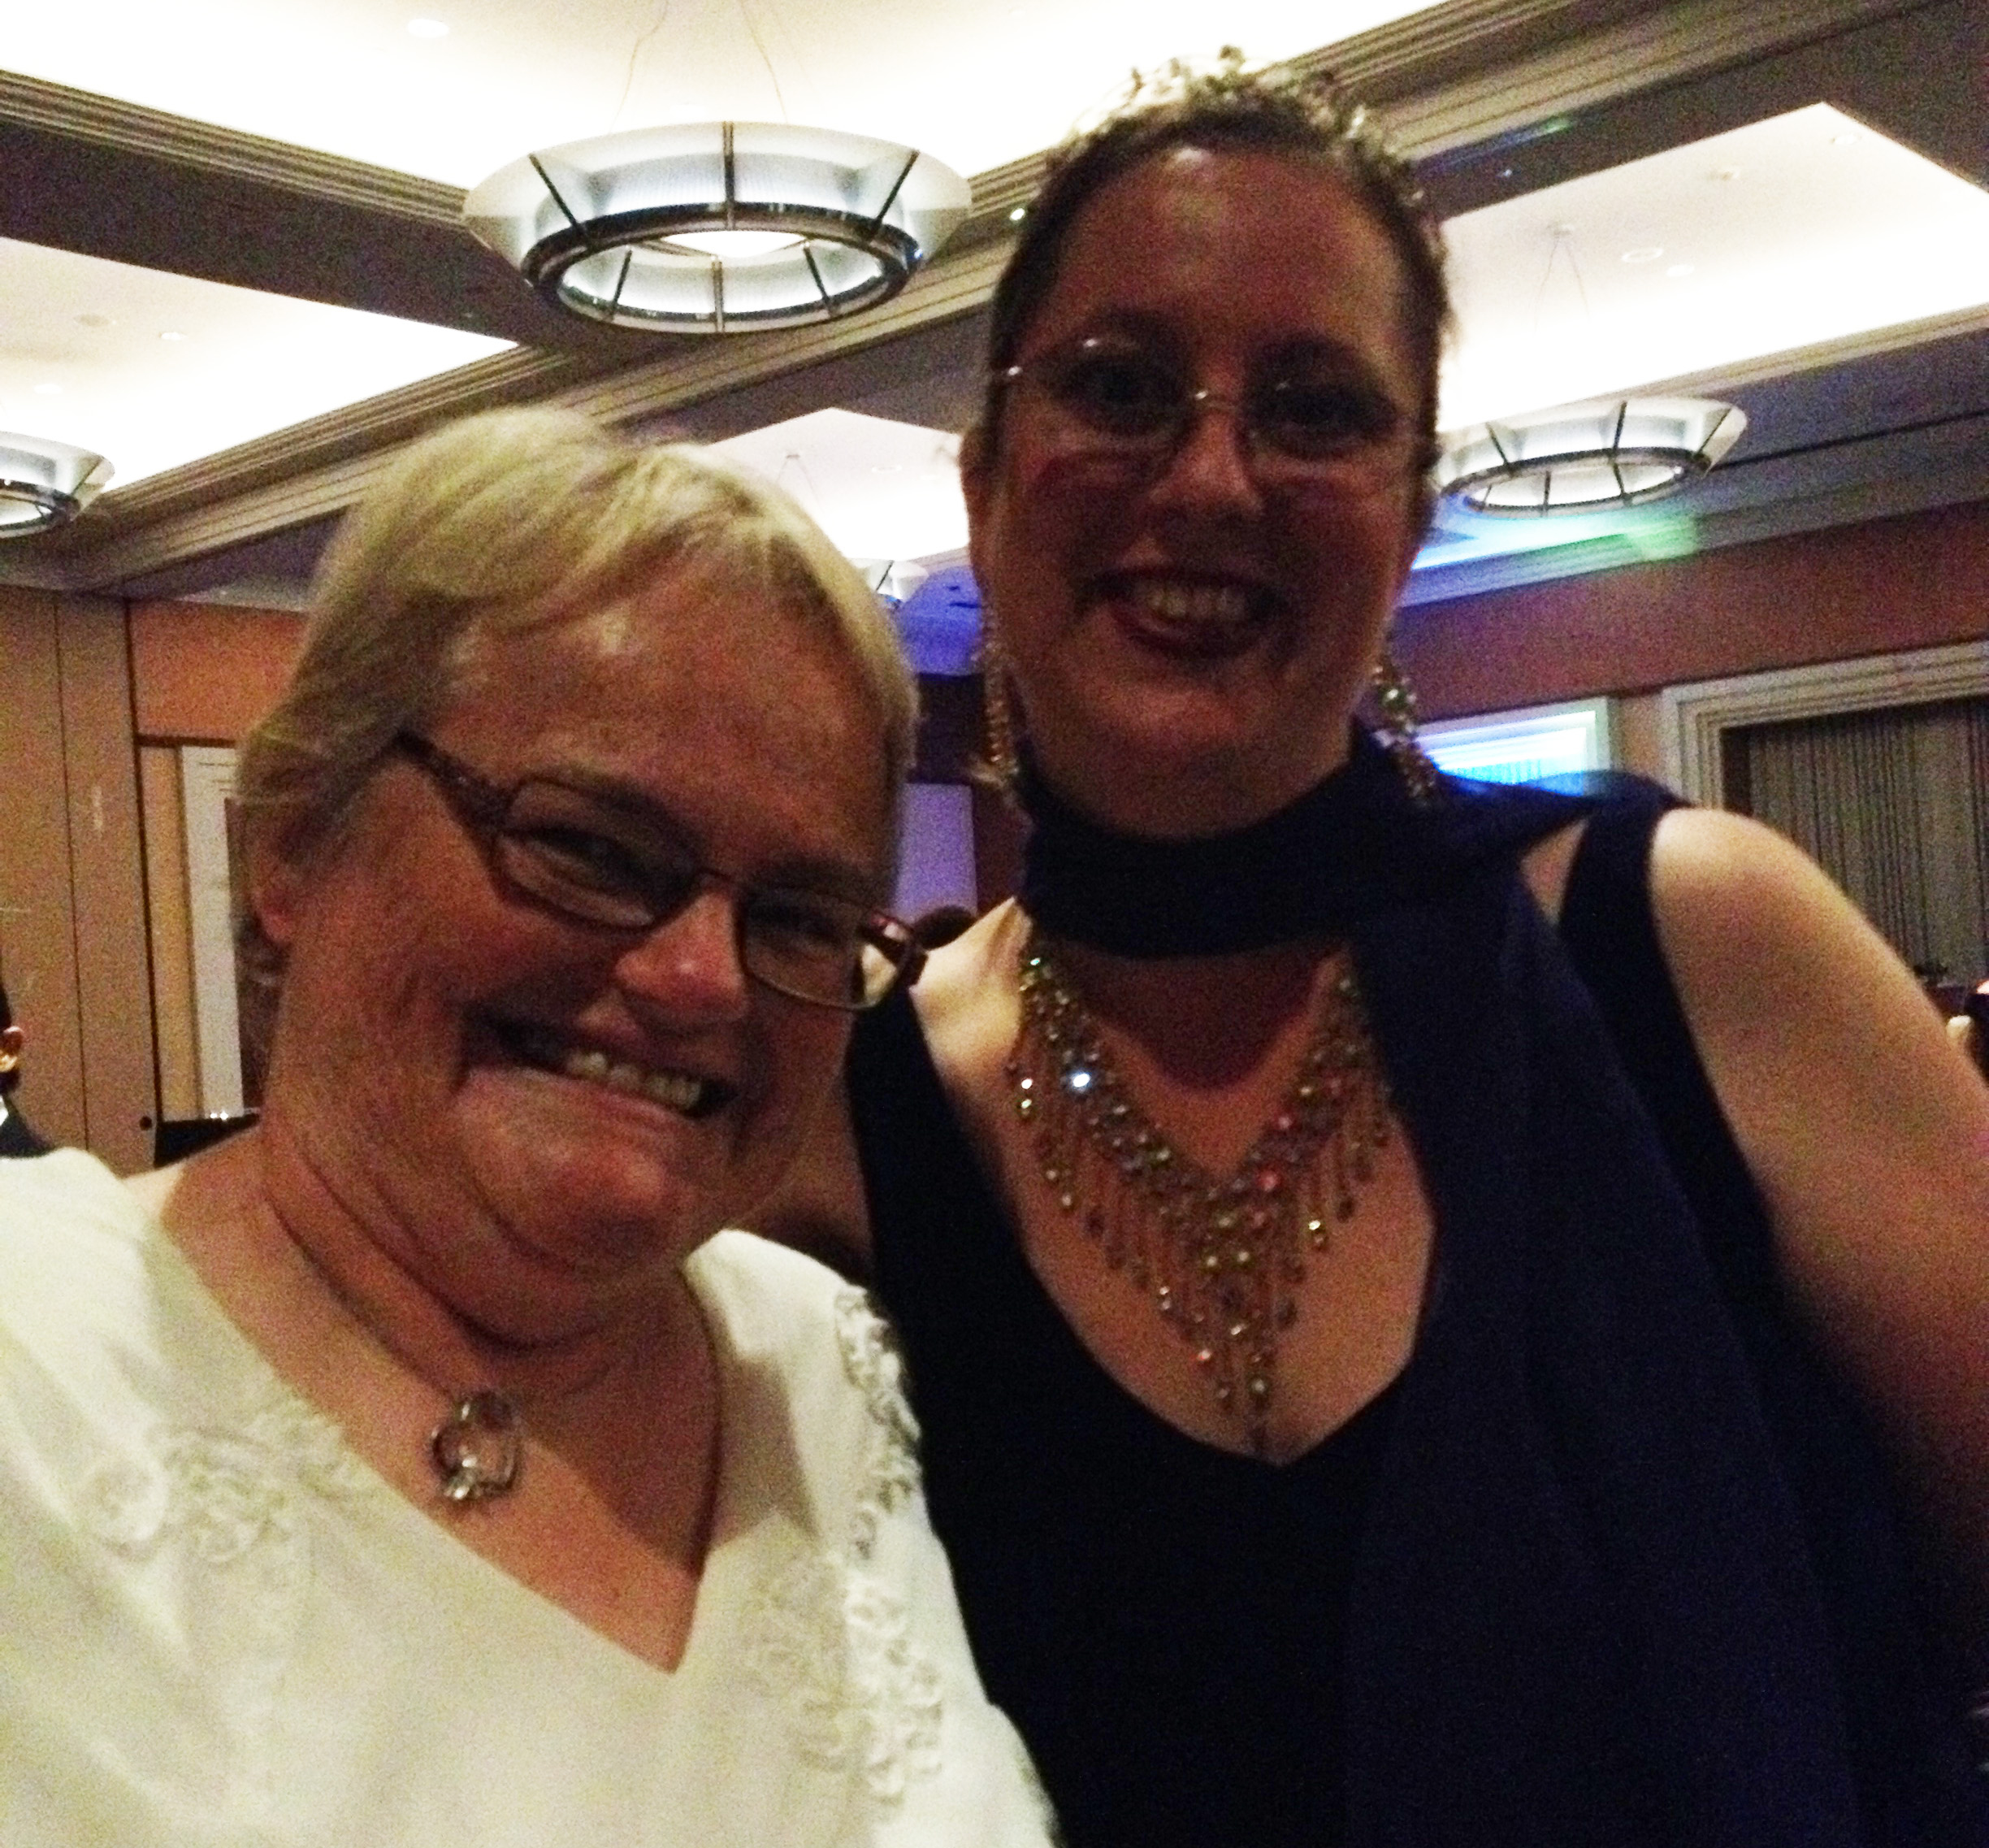 Ball photos! Kallypso Masters and Siobhan Muir, a closeup so you can see Siobhan's fantastic necklace.